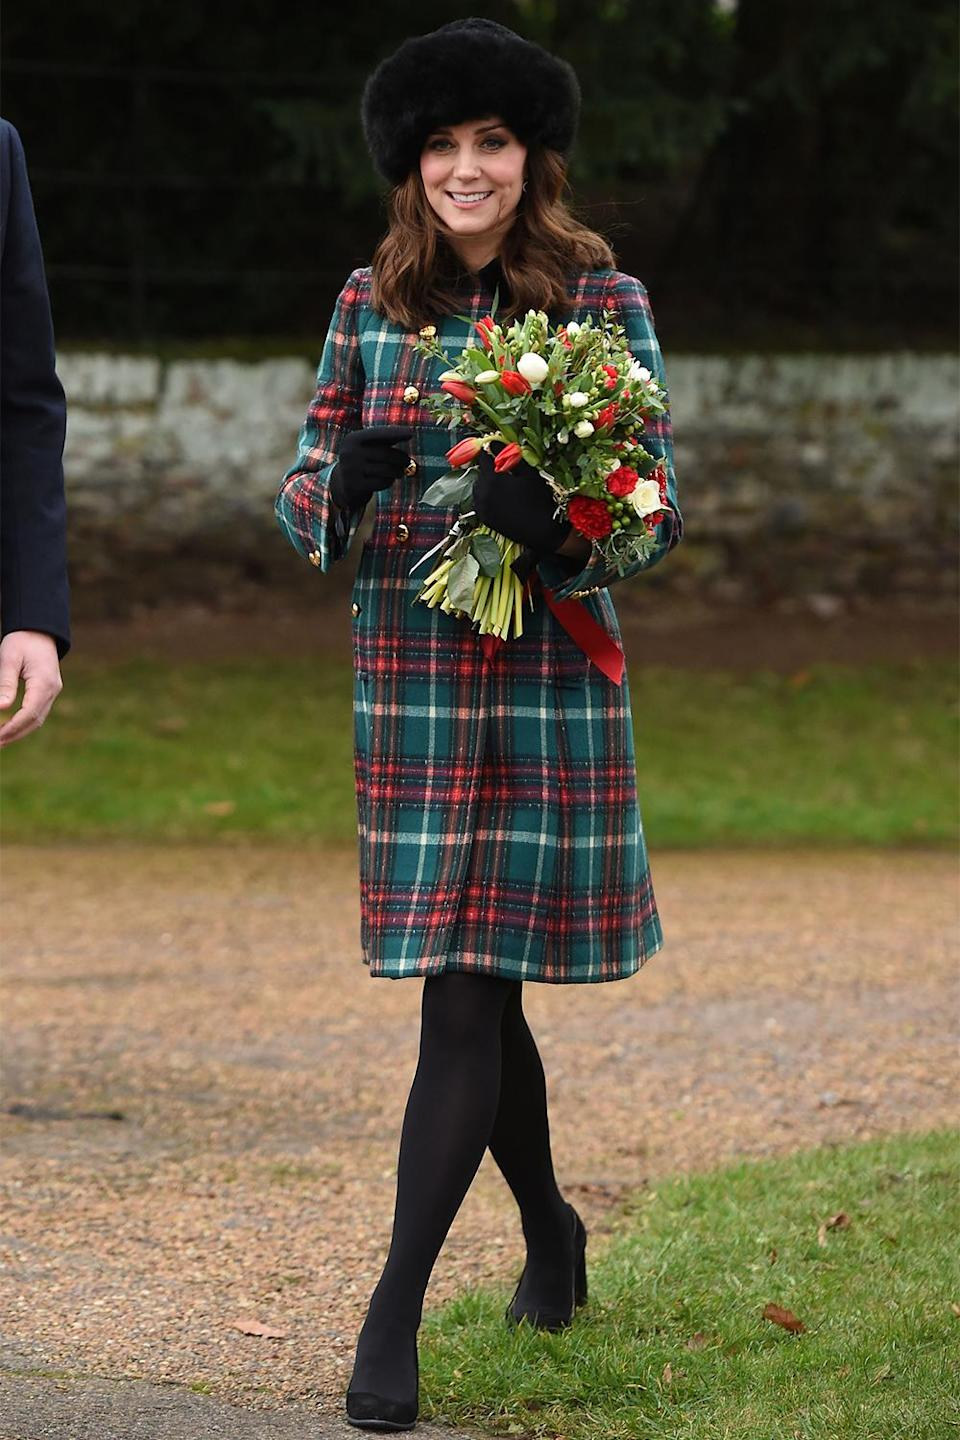 <p>While pregnant with Prince Louis, Kate walked to church on Christmas morning 2017 with a green and red plaid coat over her baby bump. </p>